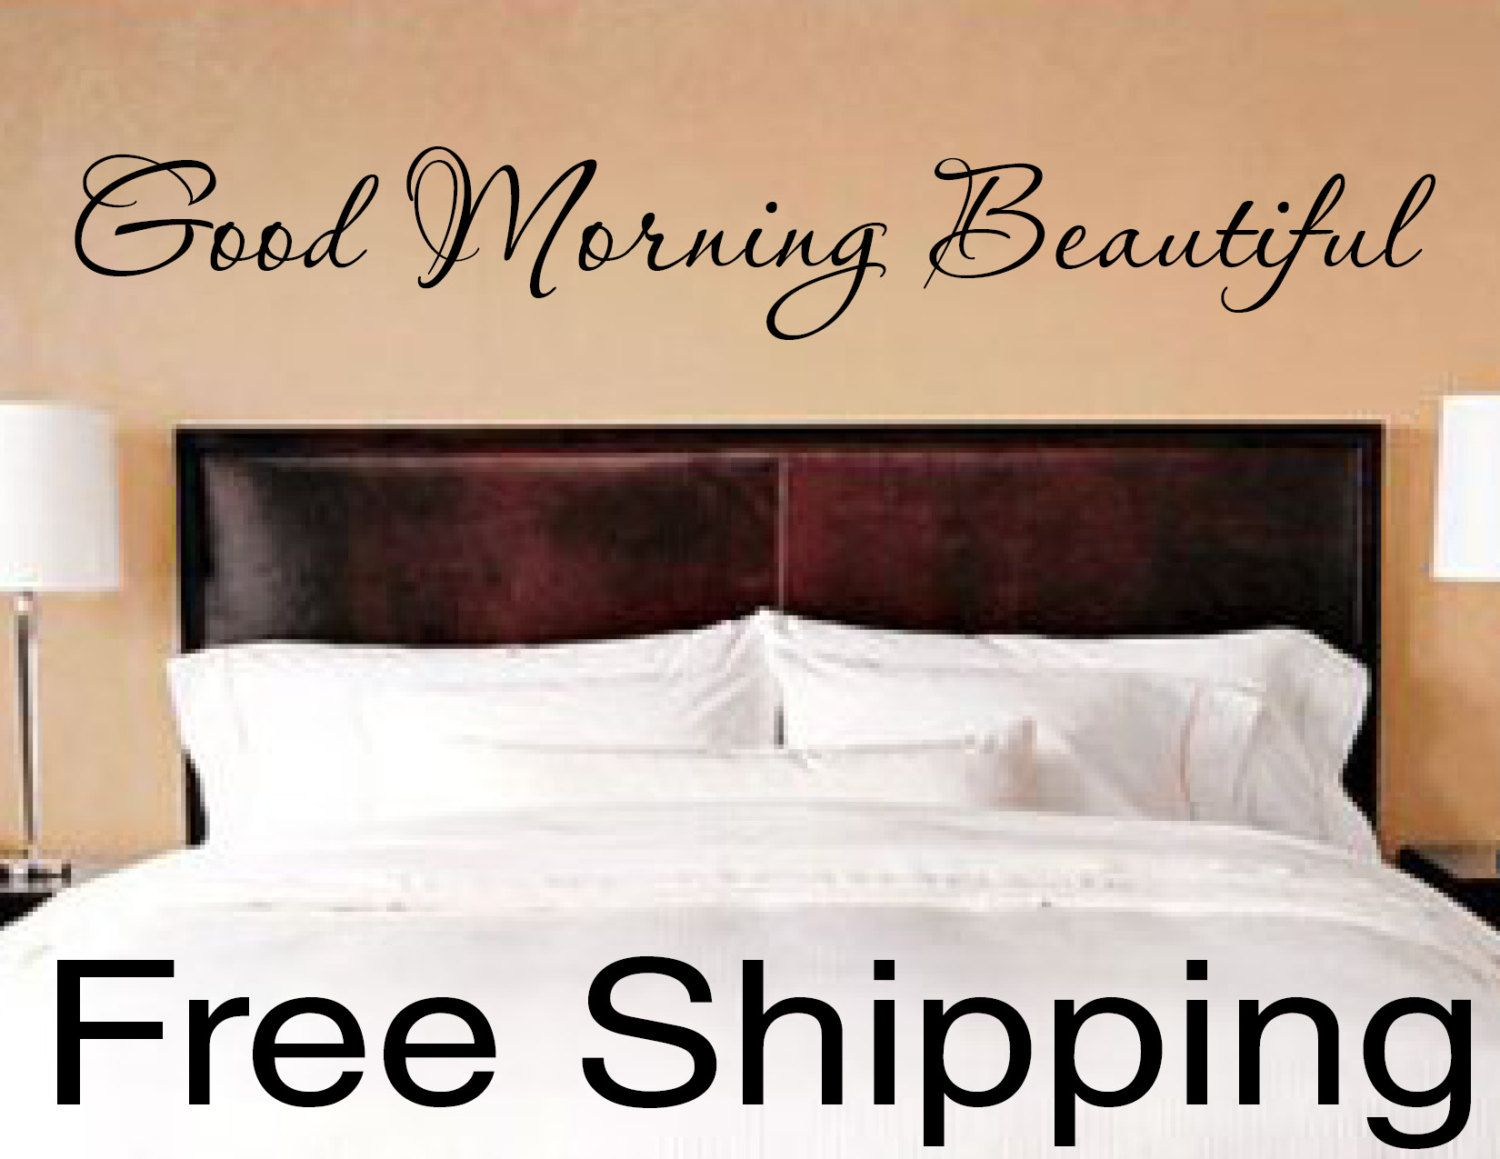 good morning beautiful vinyl wall decal sticker romantic quote good morning beautiful vinyl wall decal sticker romantic quote love art 40 x 5 75